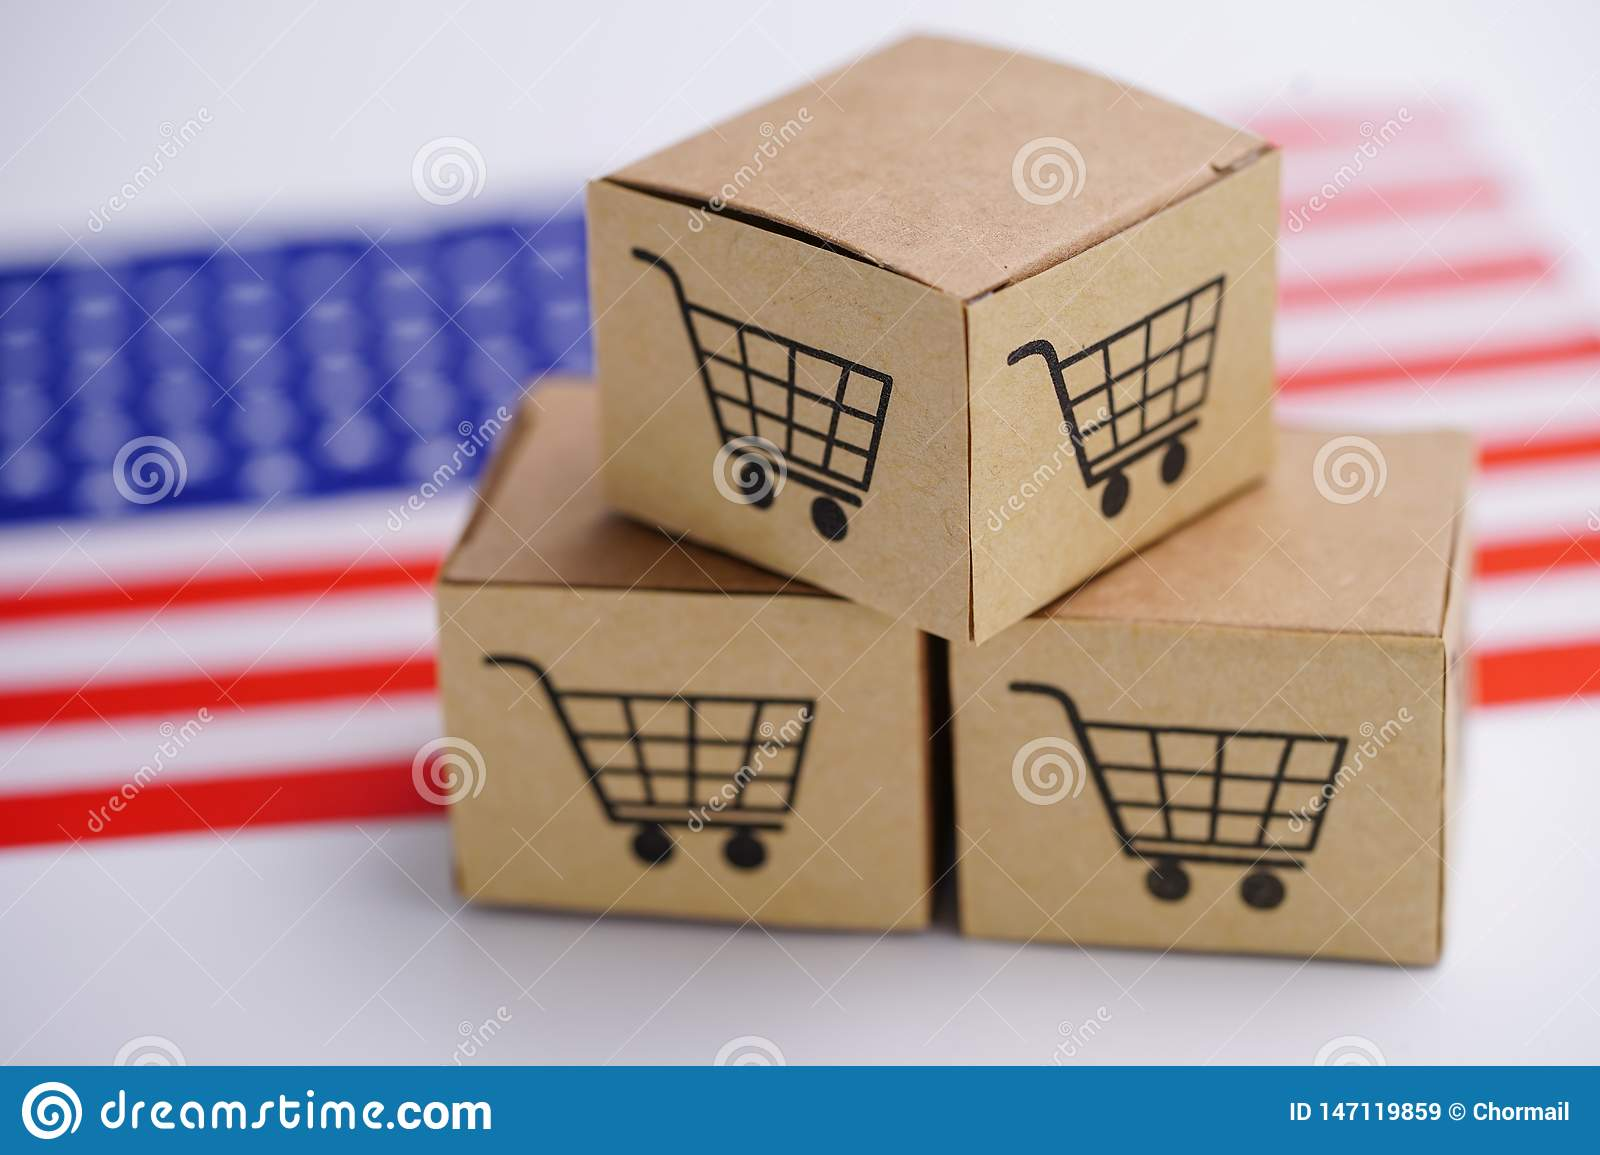 Box with shopping cart logo and United State of America USA flag : Import Export Shopping online or eCommerce